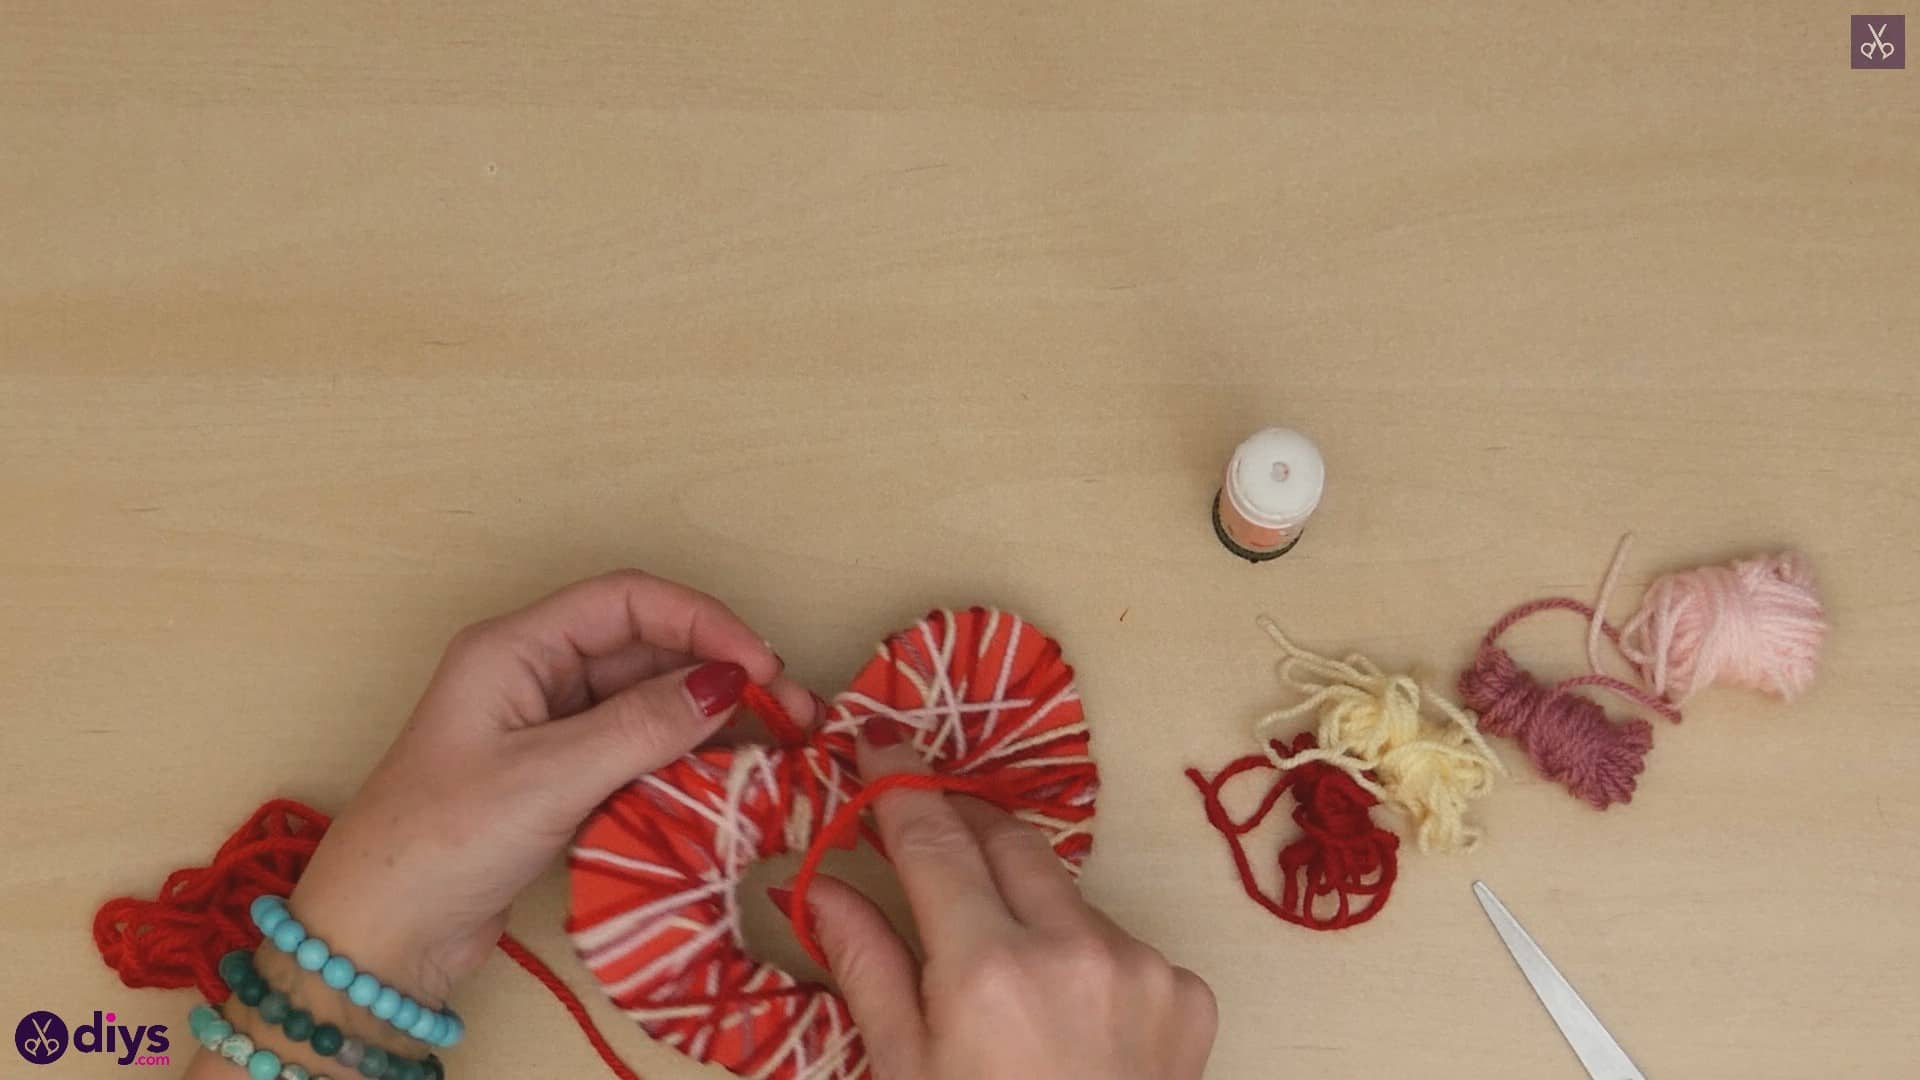 Diy yarn wrapped paper heart step b